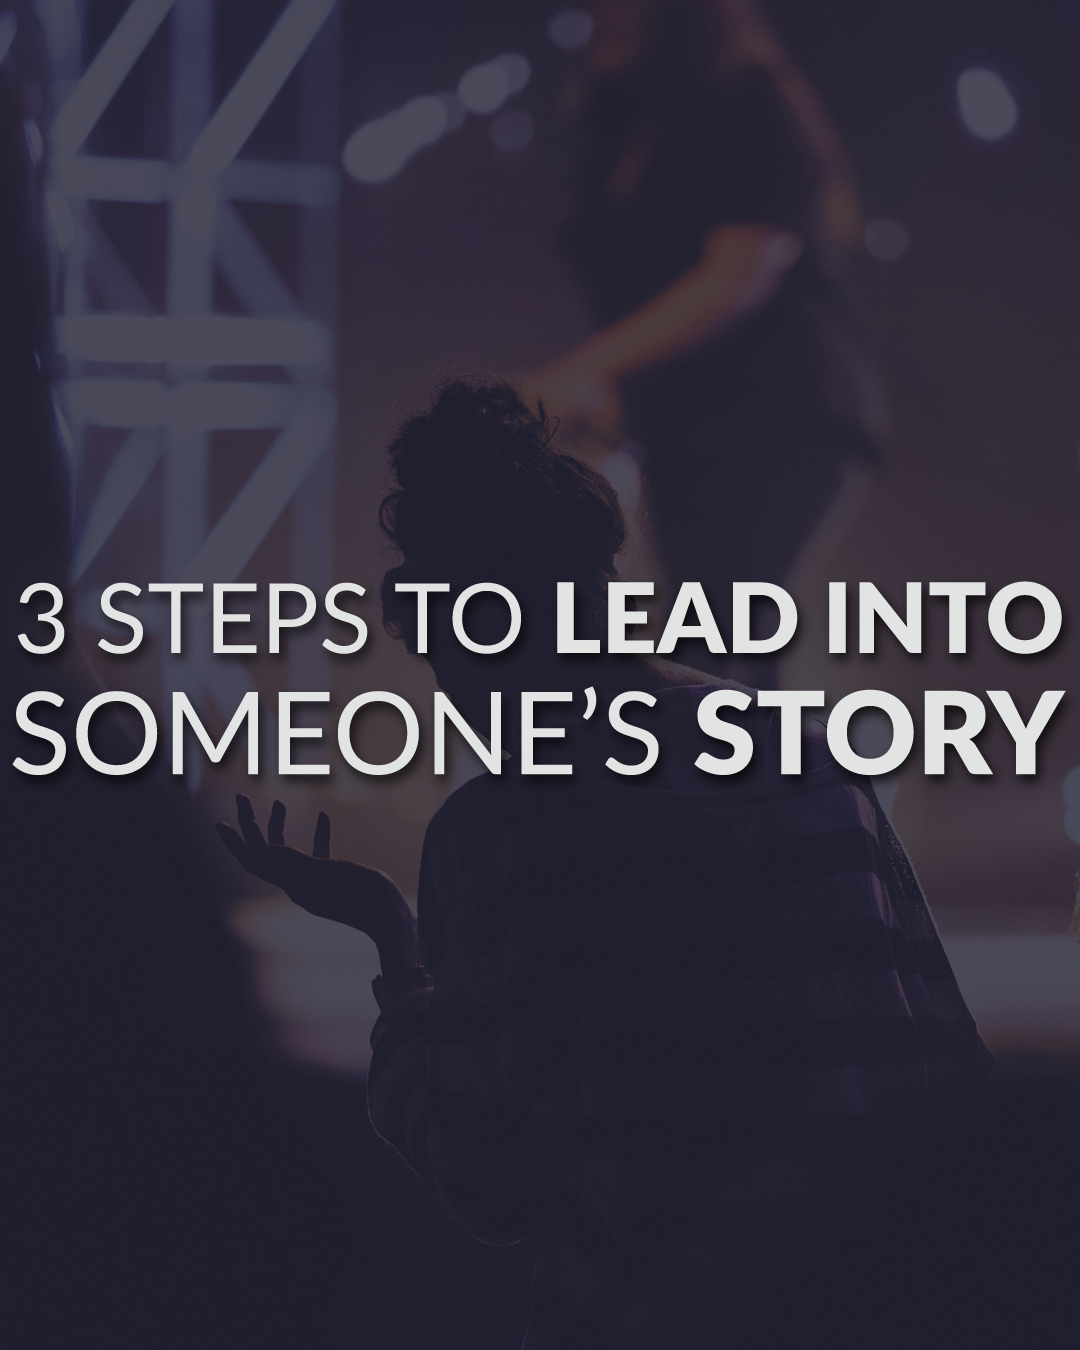 3 Steps To Lead Into Someone's Story